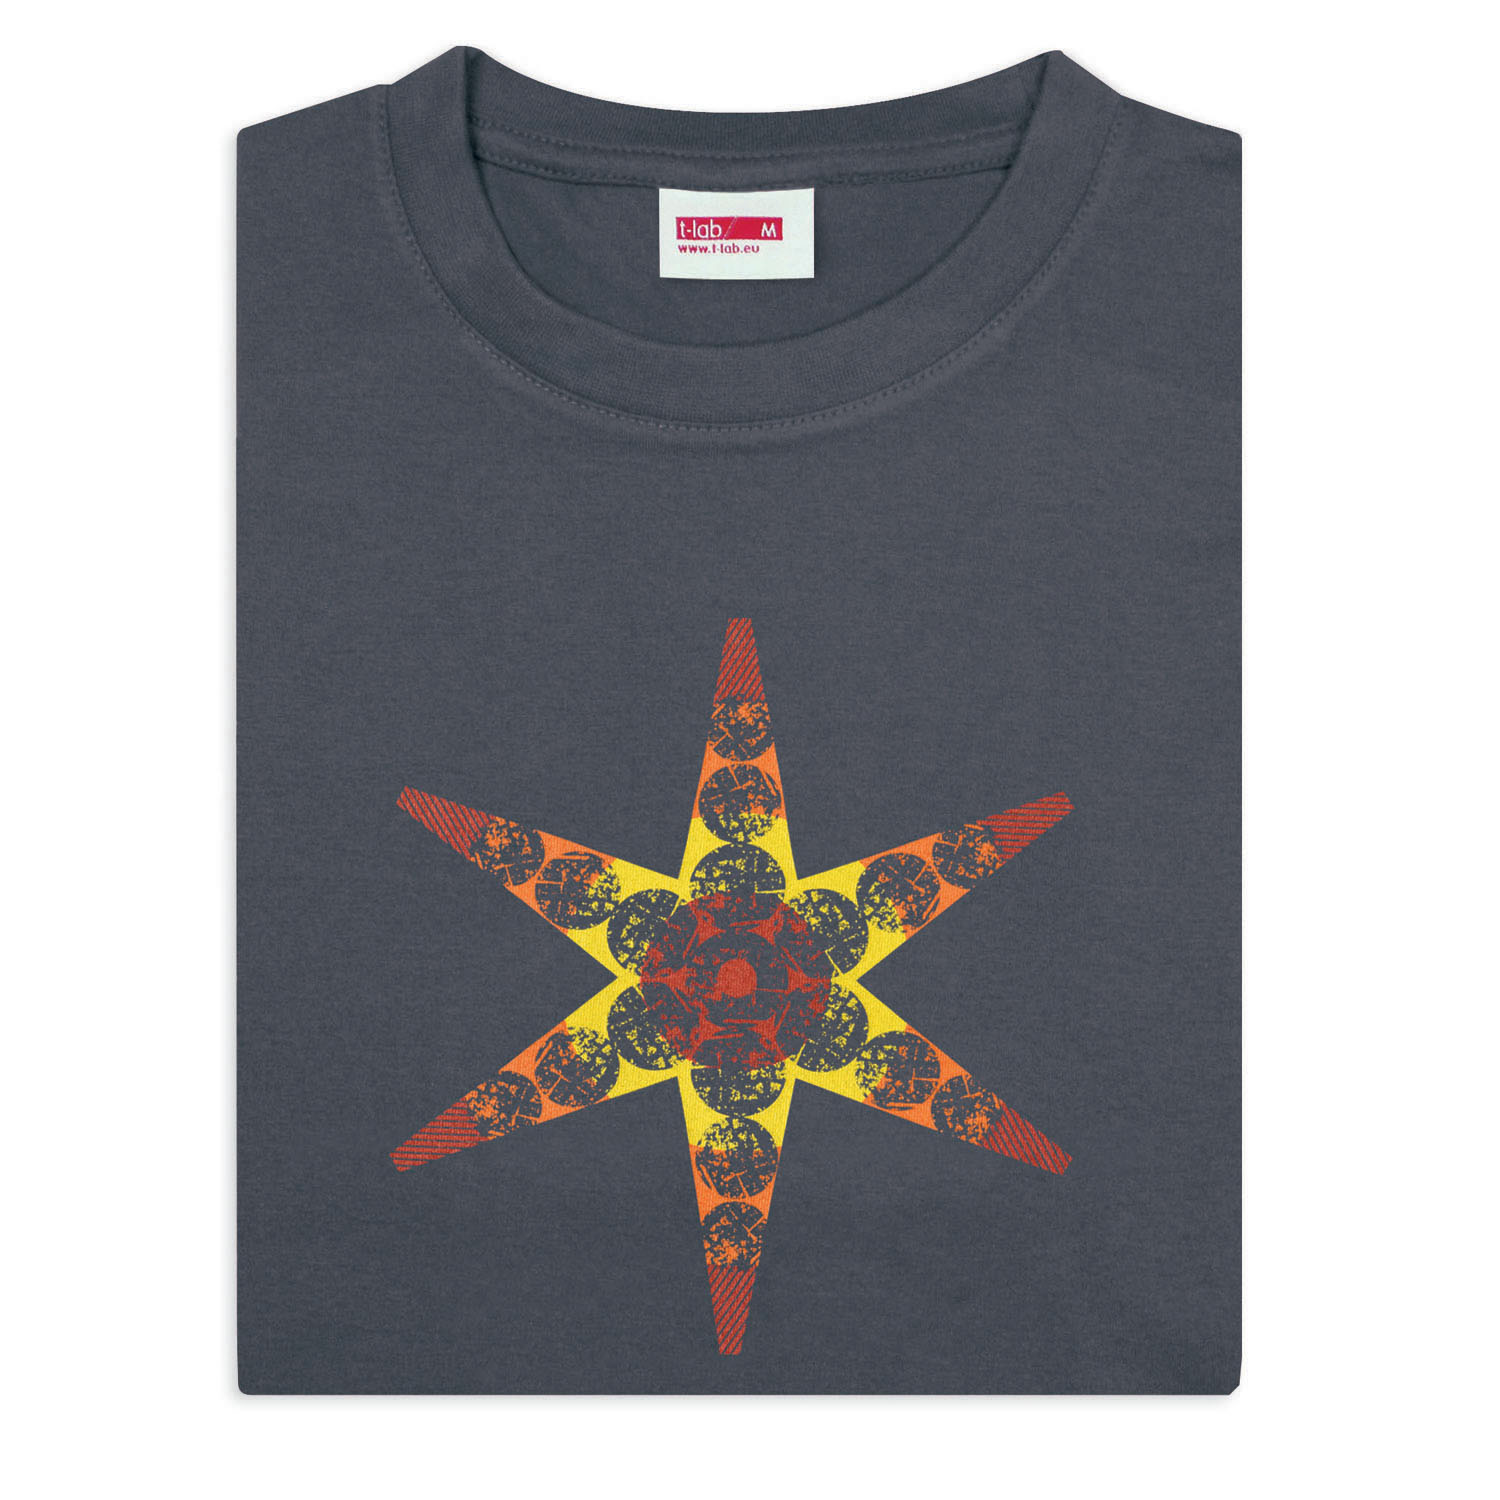 T-lab-BBQ-Star-mens-t-shirt-grey